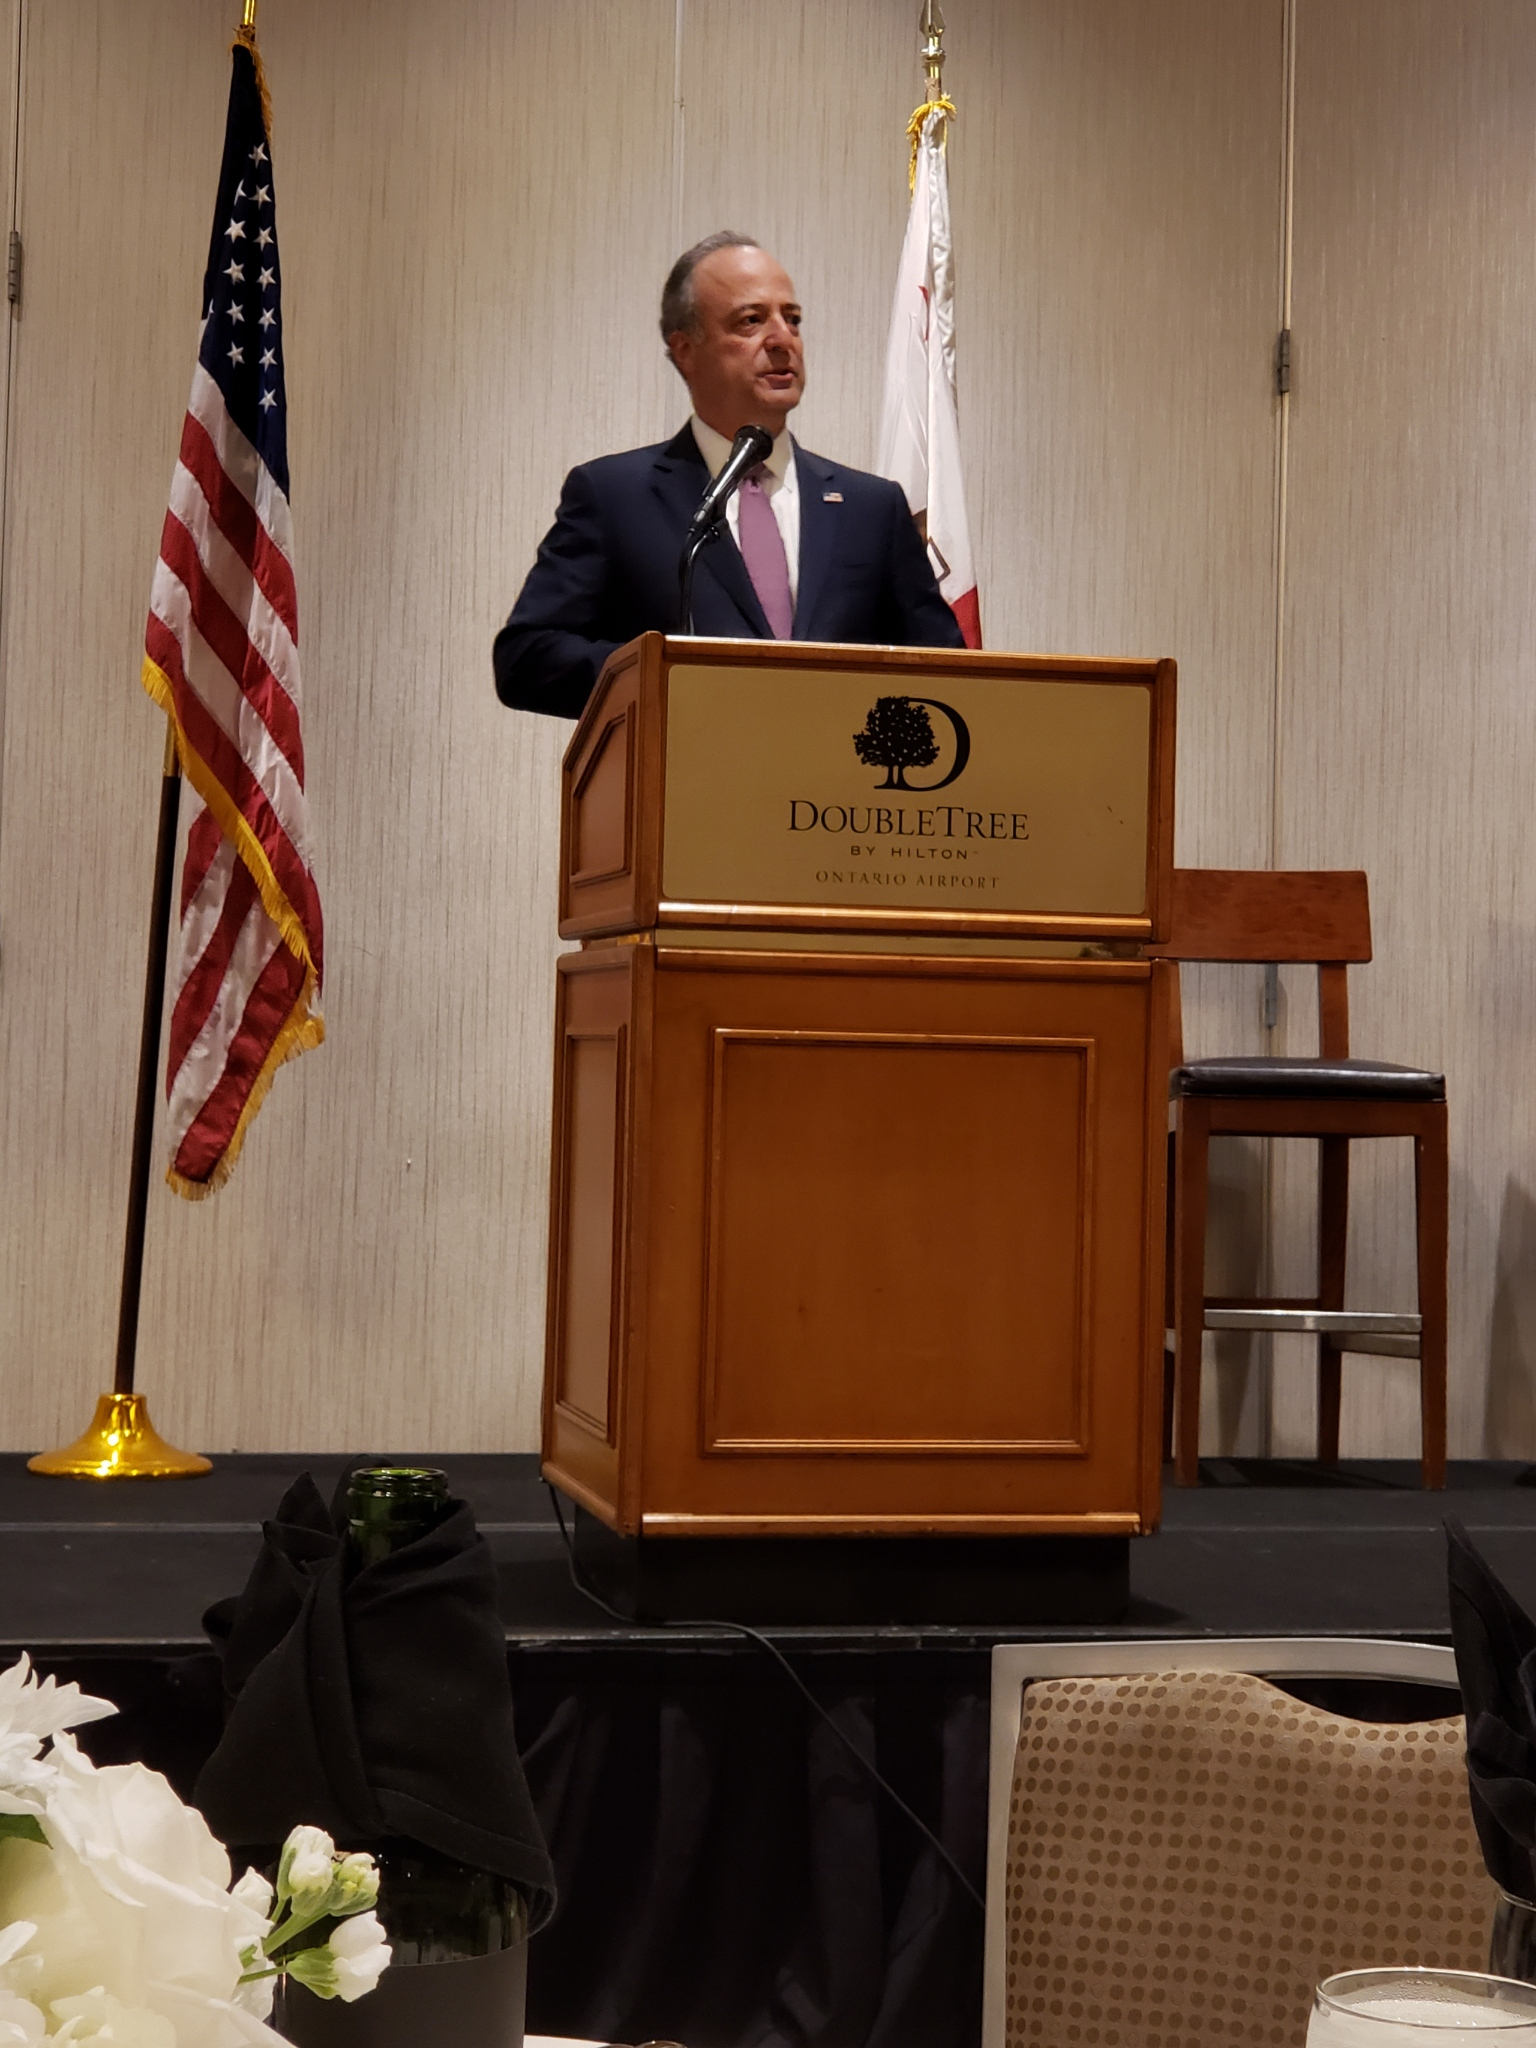 Nick Hanna, U.S. Attorney for the Central District of California